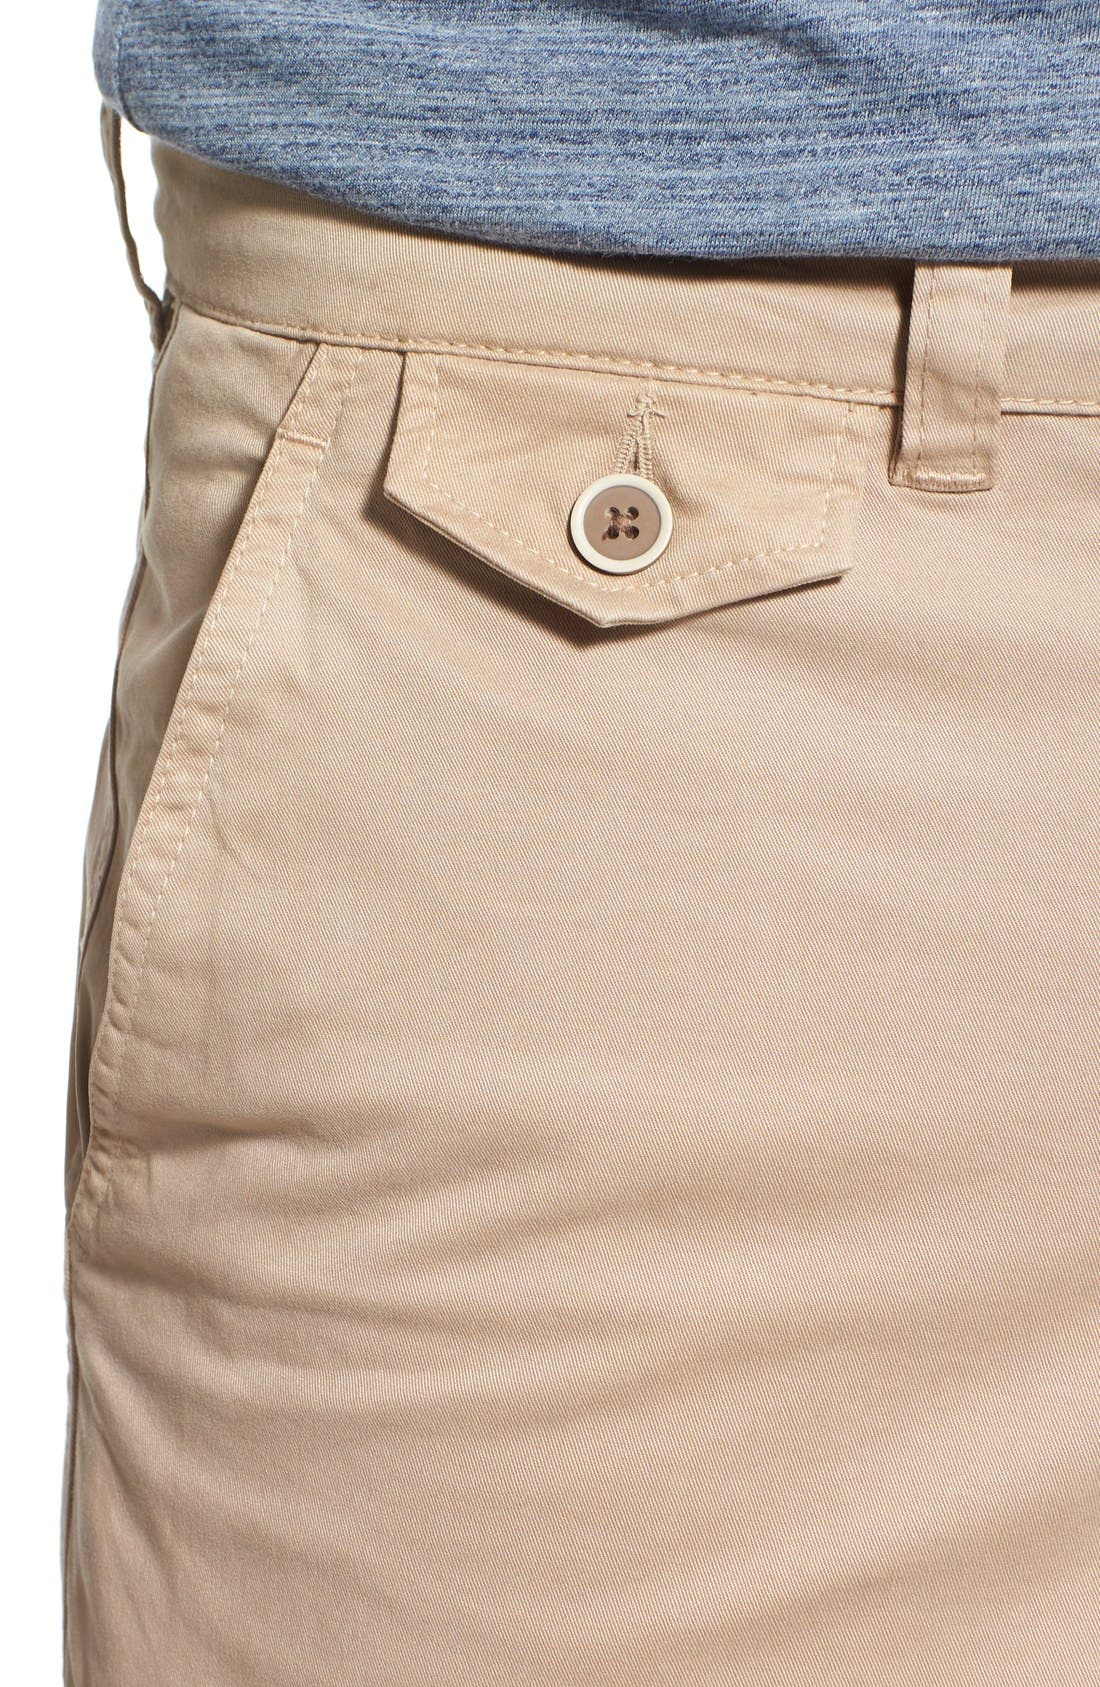 'Sunny' Stretch Twill Chino Shorts,                             Alternate thumbnail 23, color,